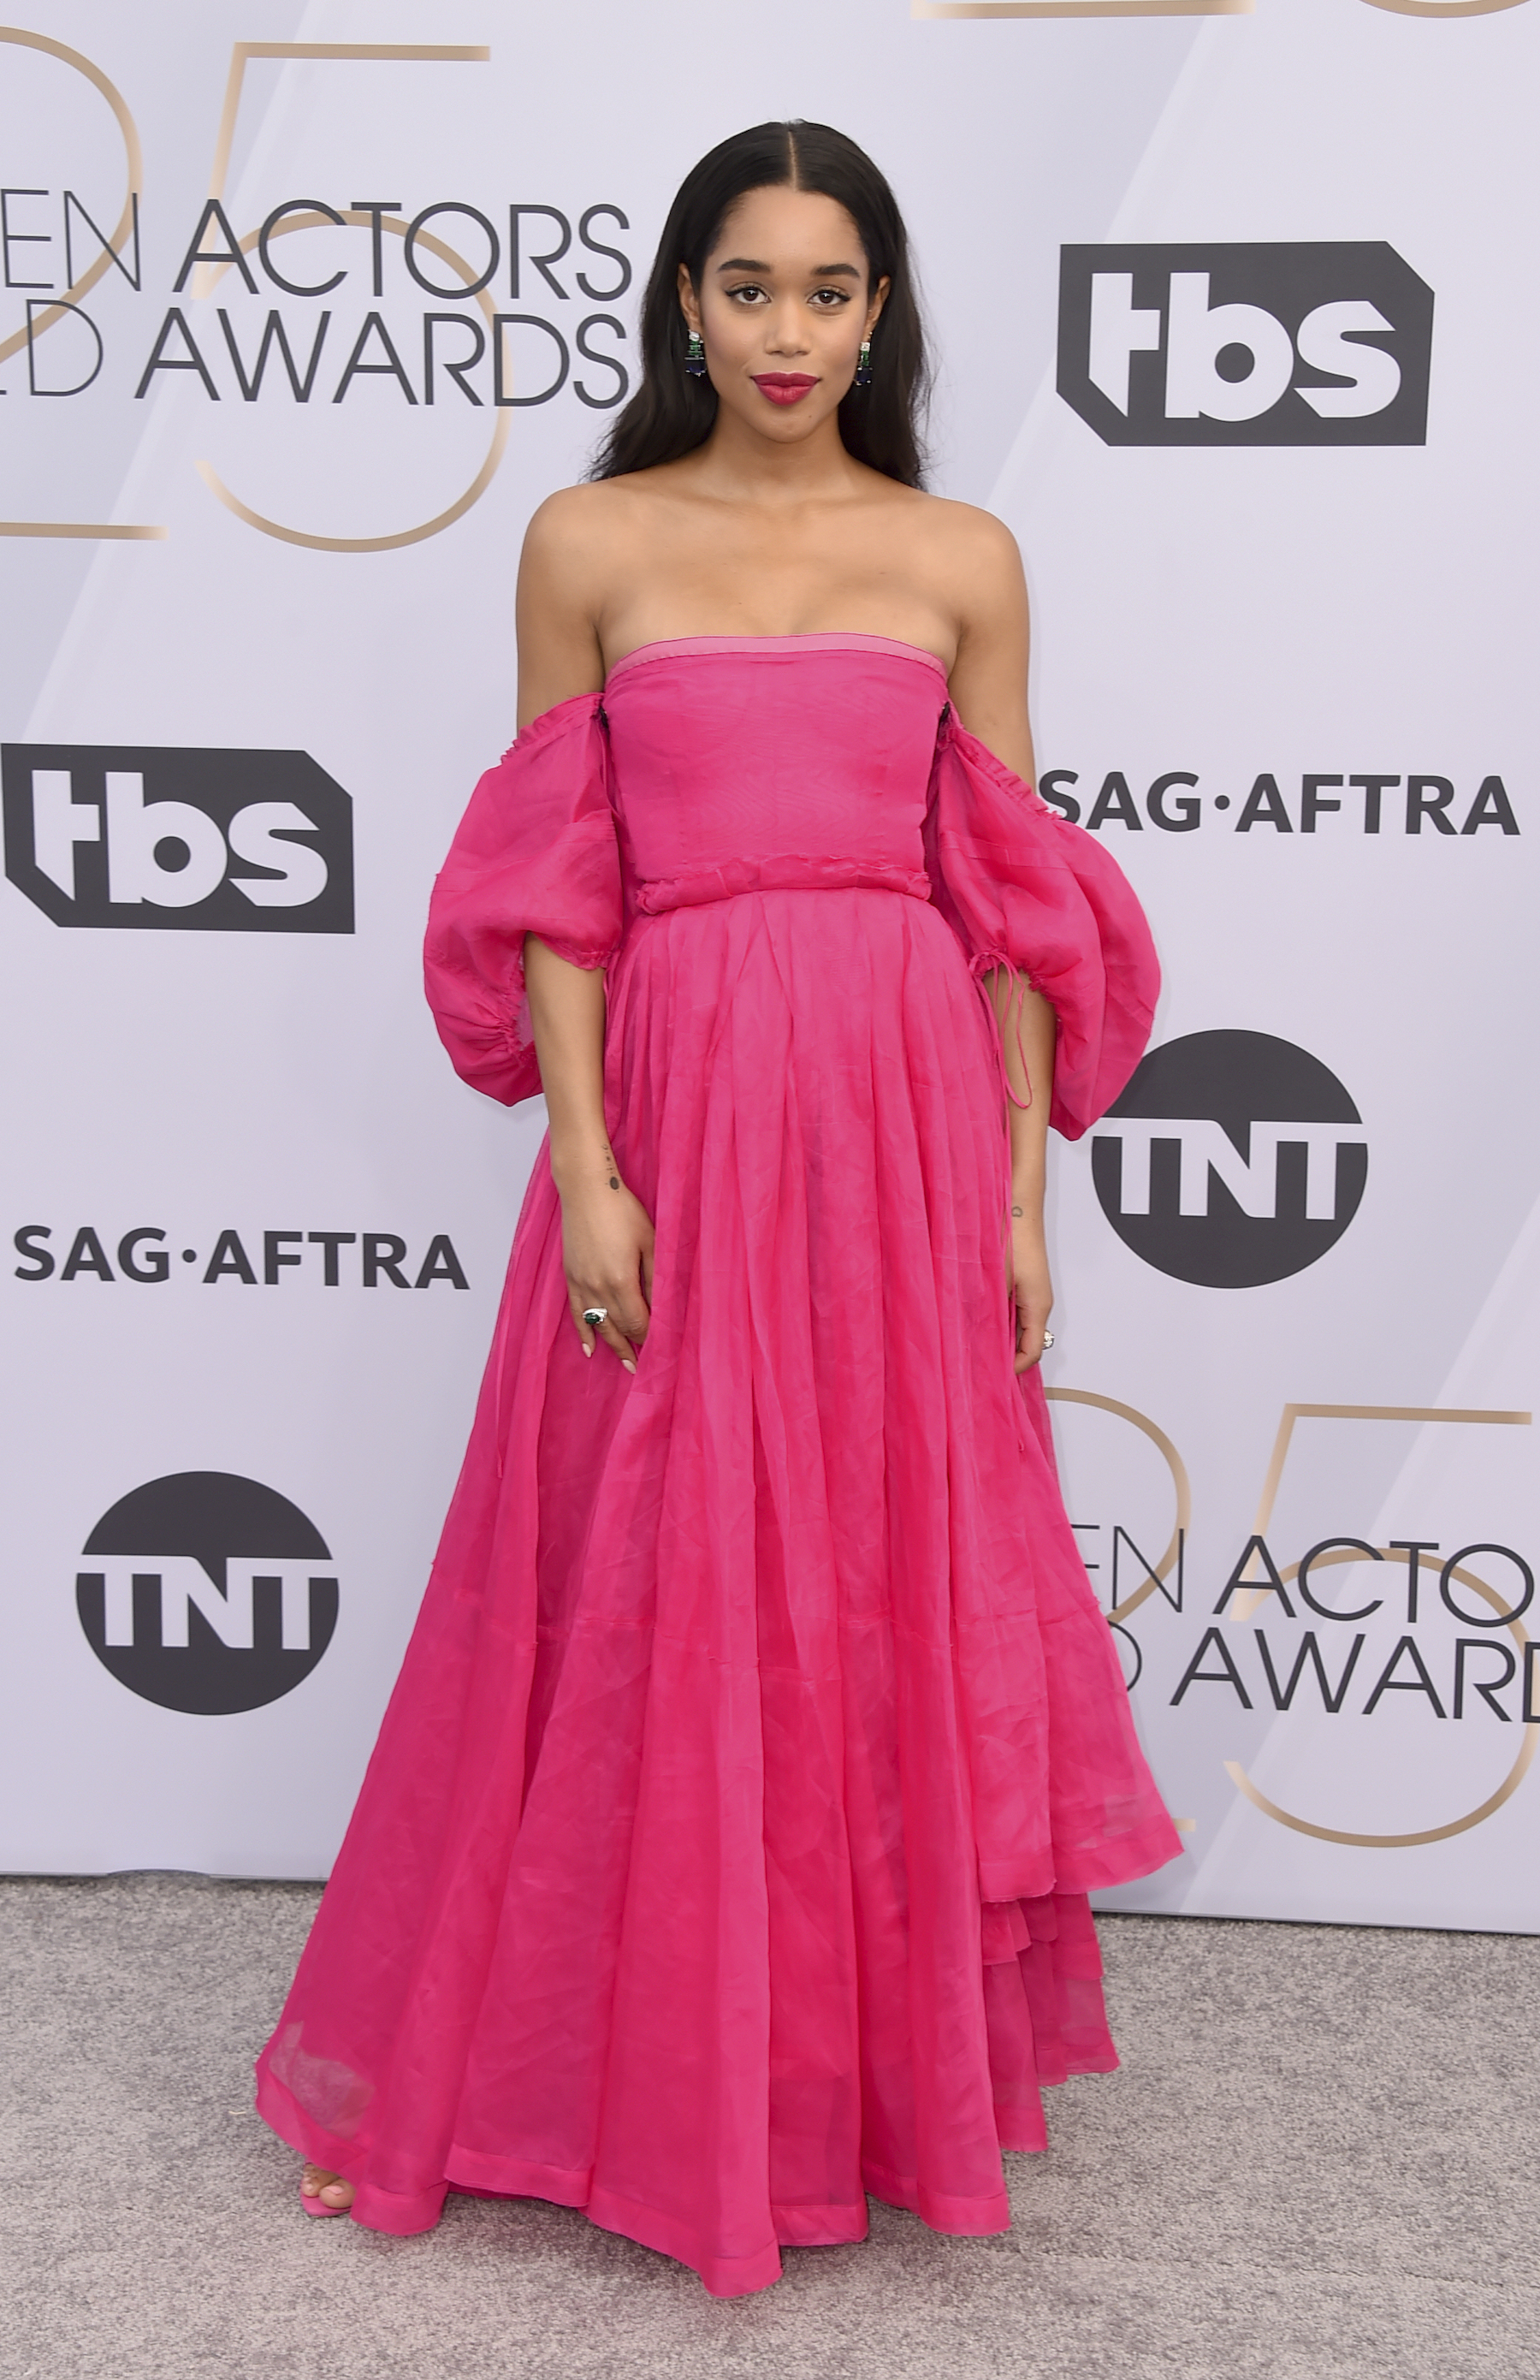 "<div class=""meta image-caption""><div class=""origin-logo origin-image ap""><span>AP</span></div><span class=""caption-text"">Laura Harrier arrives at the 25th annual Screen Actors Guild Awards at the Shrine Auditorium & Expo Hall on Sunday, Jan. 27, 2019, in Los Angeles. (Jordan Strauss/Invision/AP)</span></div>"